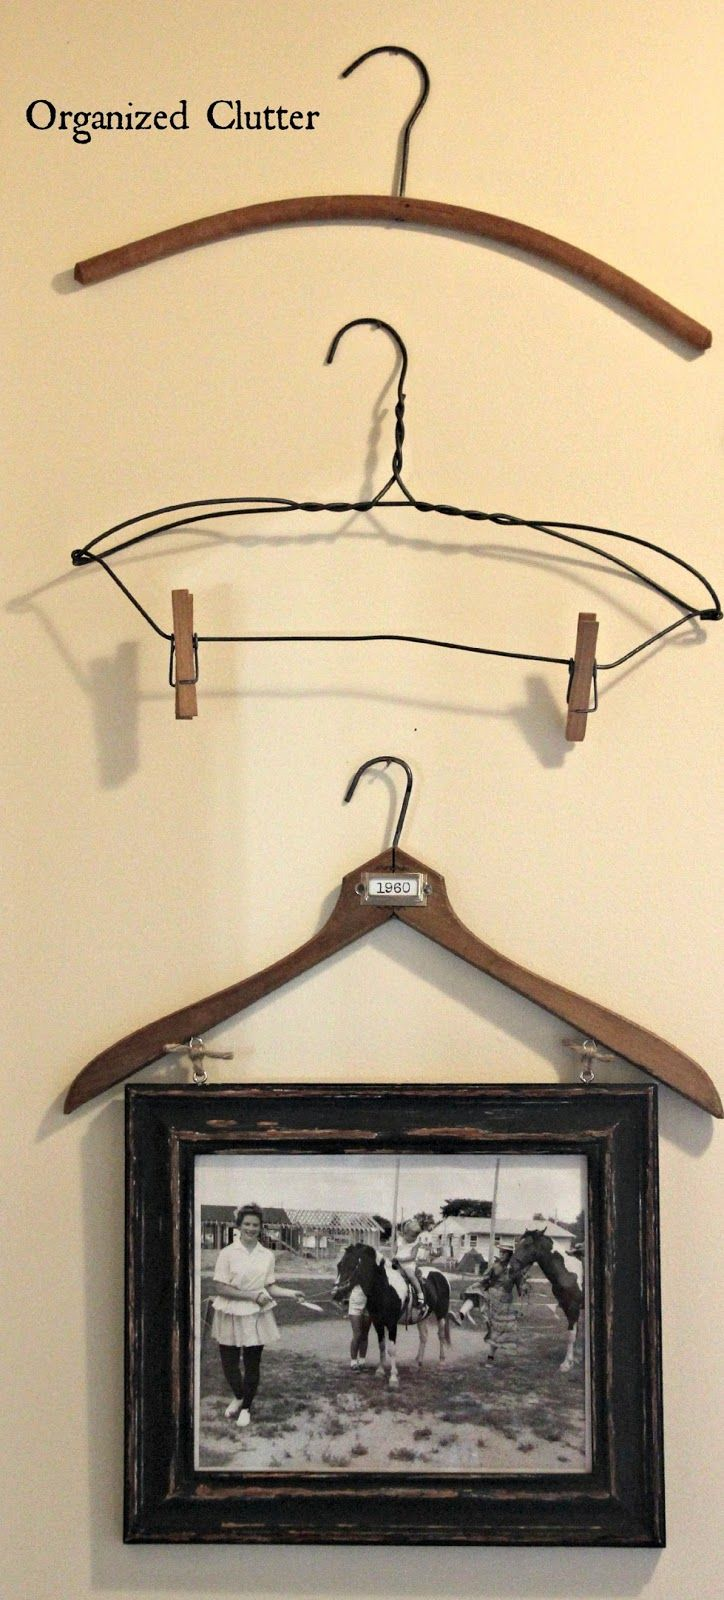 Vintage Clothes Hanger Repurpose is part of Vintage Clothes Art - 4 bath too  I love old clothes hangers on the wall! Get Posts Delivered by Email